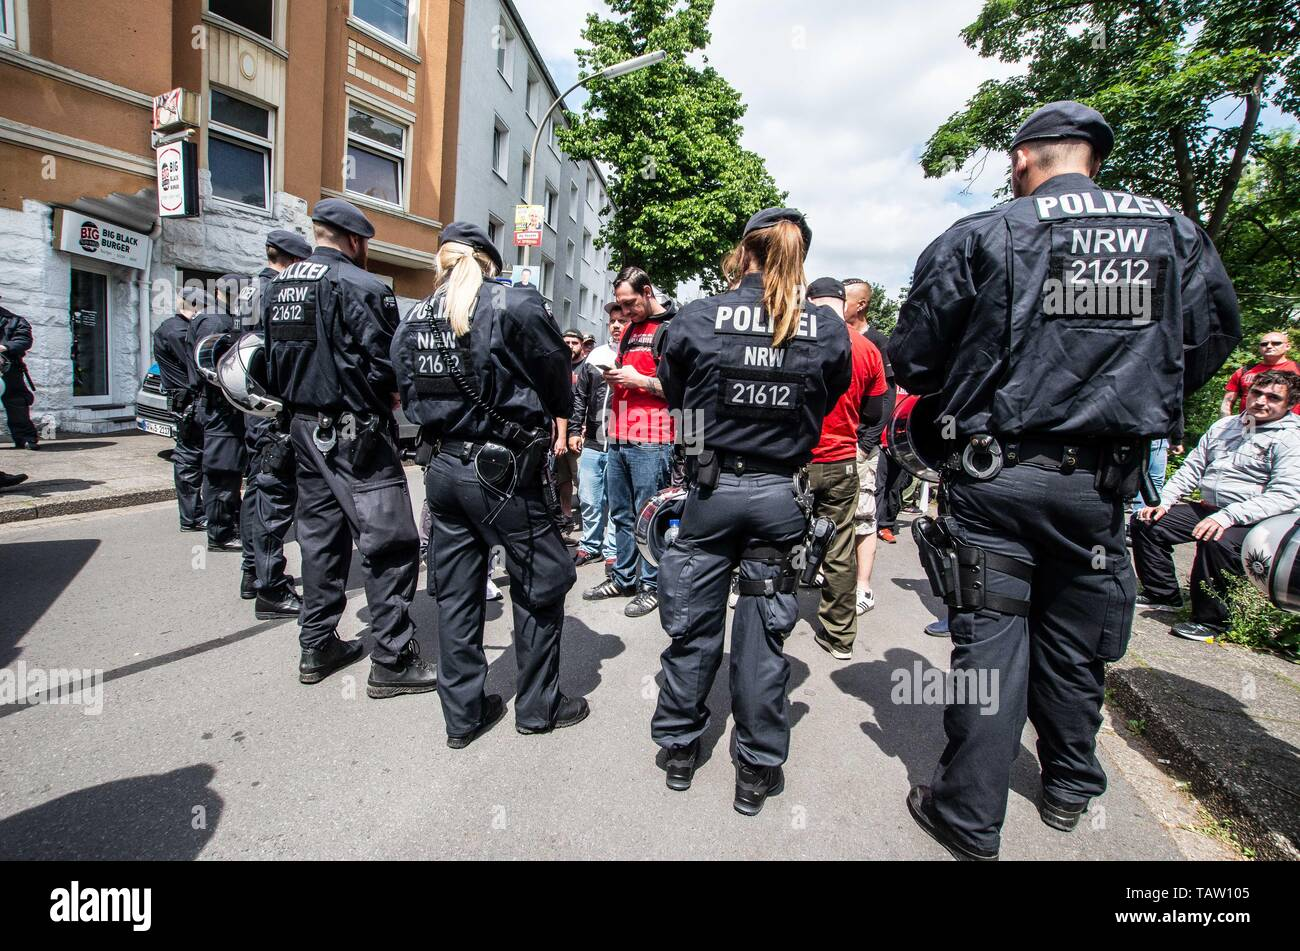 Dortmund, Nordrhein Westfalen, Germany. 25th May, 2019. Special commandos from the NRW police in Germany check incoming neonazis for contraband and weapons. Prior to the European Elections, the neonazi party Die Rechte (The Right) organized a rally in the German city of Dortmund to promote their candidate, the incarcerated Holocaust denier Ursula Haverbeck. The demonstration and march were organized by prominent local political figure and neonazi activist Michael Brueck (Michael Brück) who enlisted the help of not only German neonazis, but also assistance from Russian, Bulgarian, Hungarian, Stock Photo